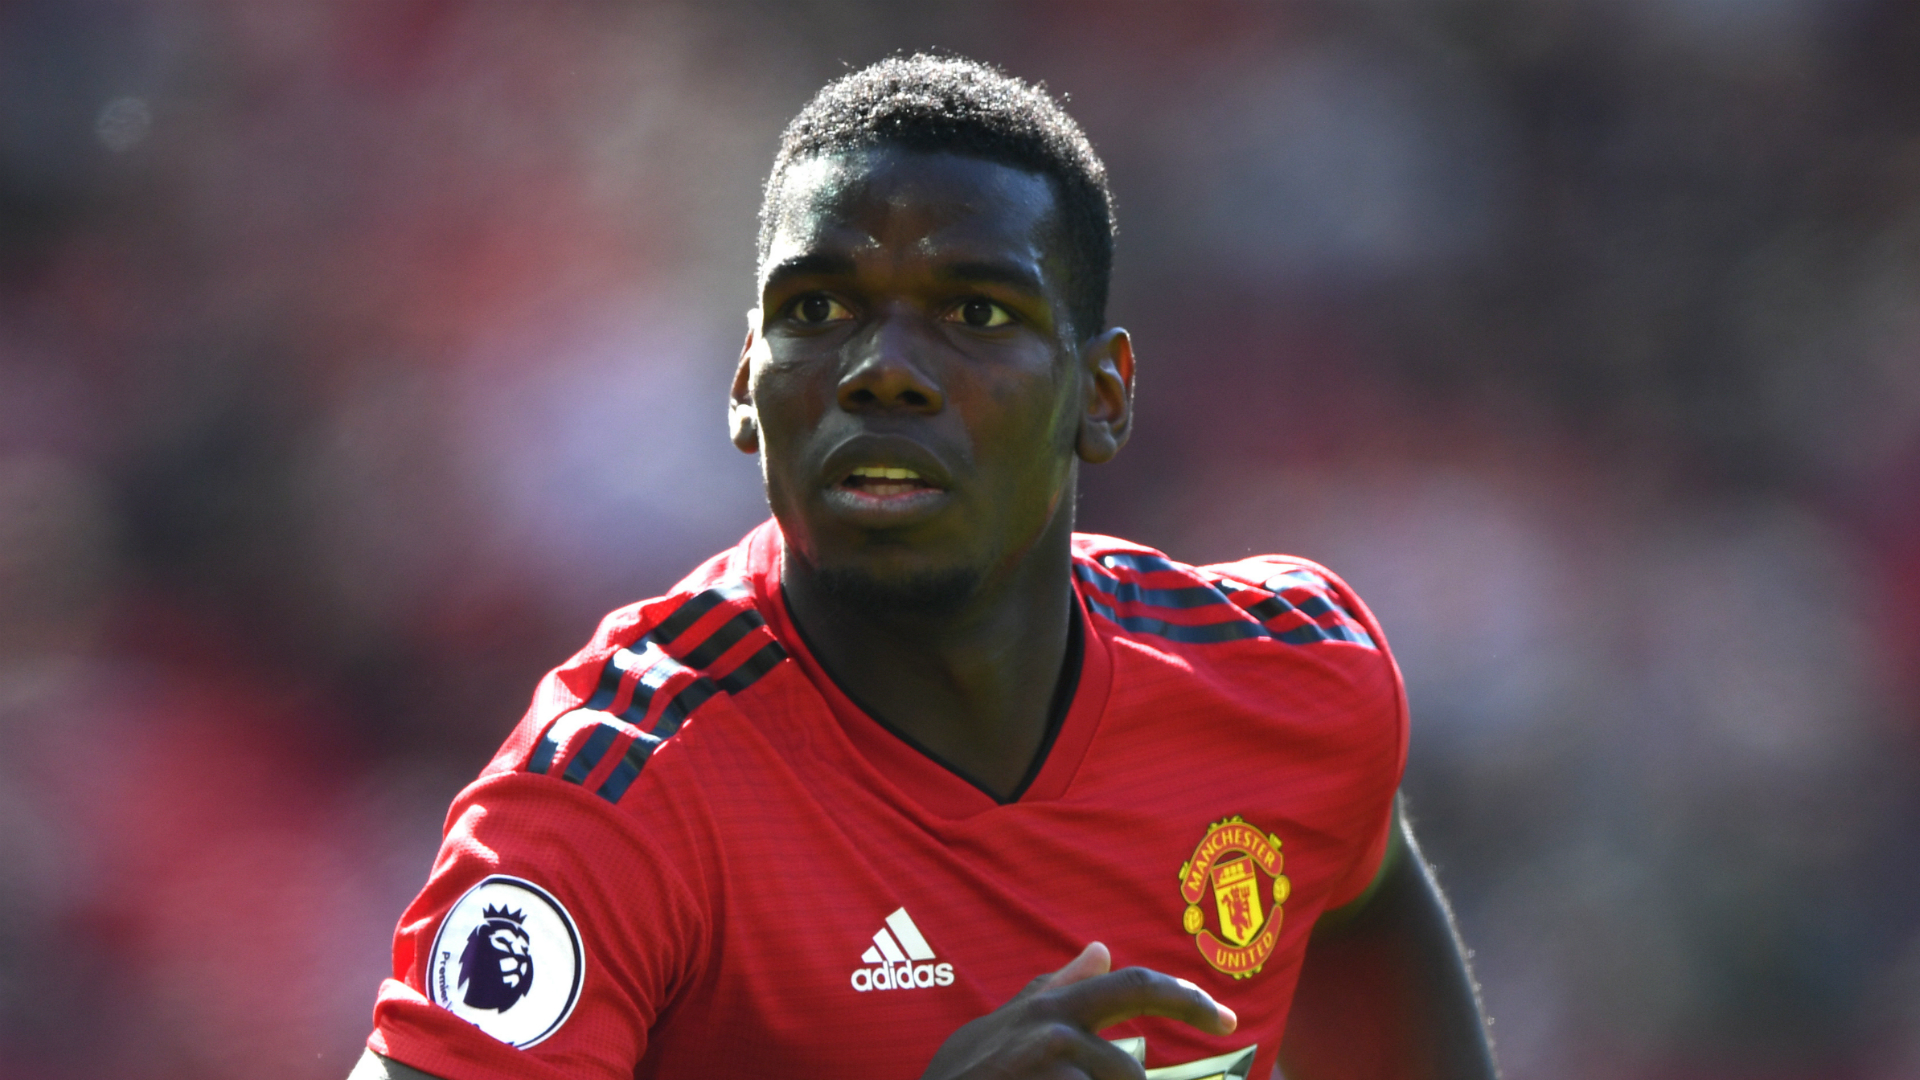 Pogba named in Man United squad for pre-season tour